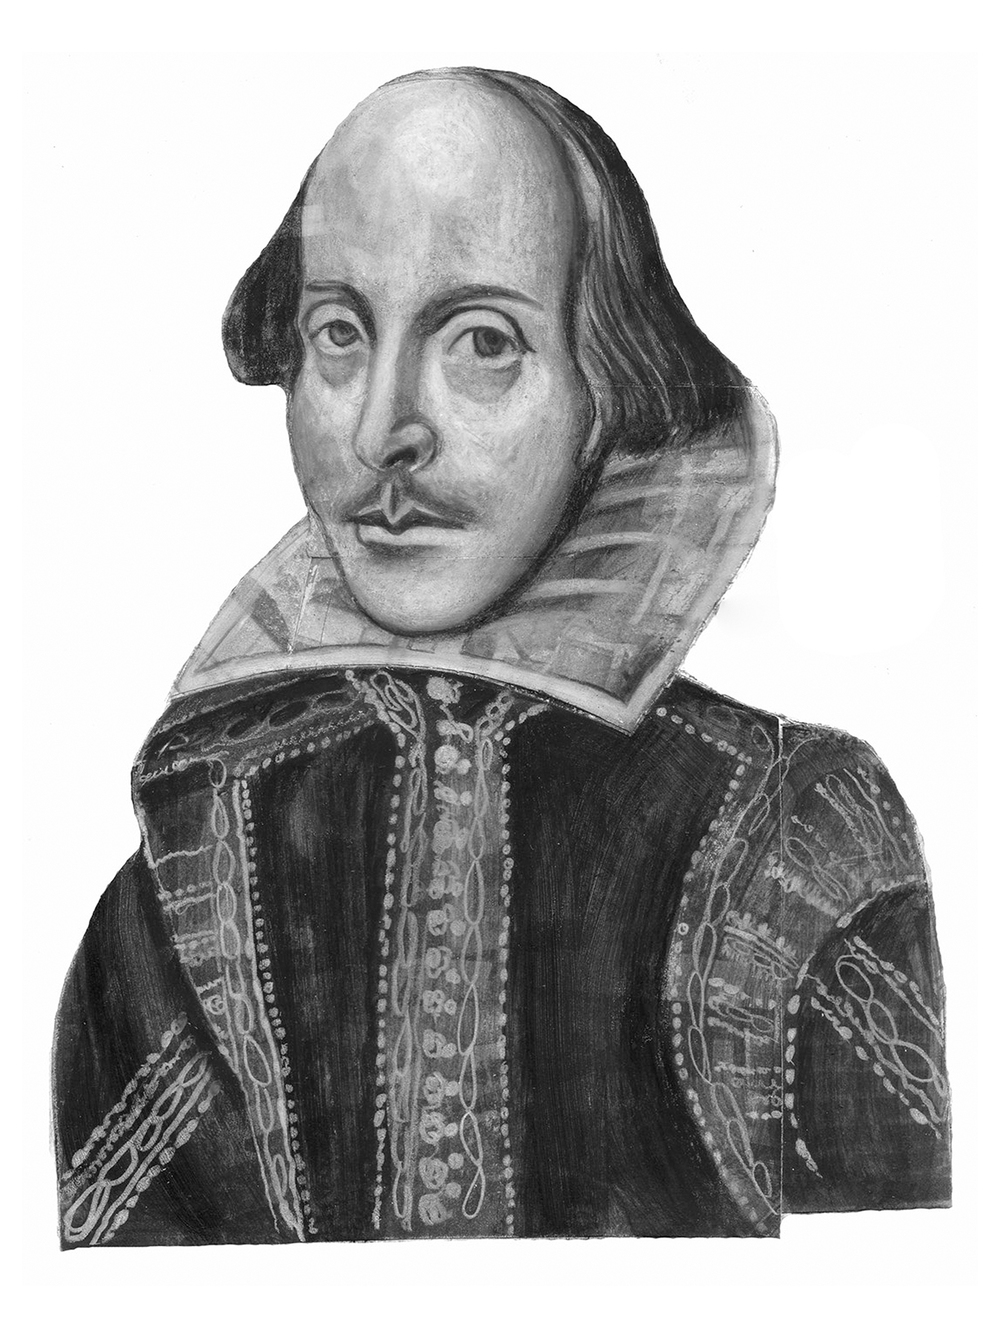 William Shakespeare / Chicago Tribune